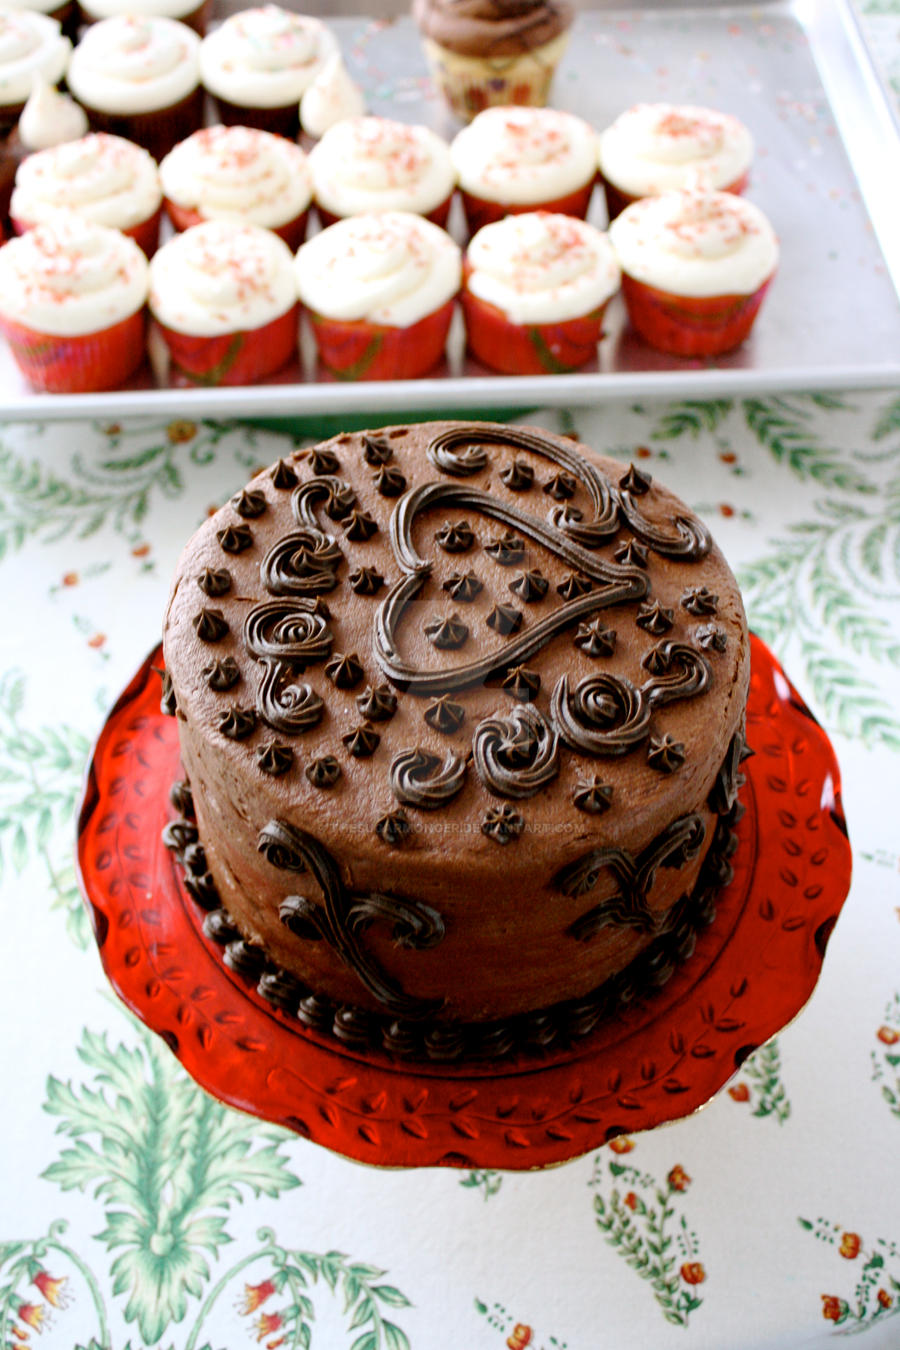 Mexican Hot Chocolate Cake by theSugarmonger on DeviantArt